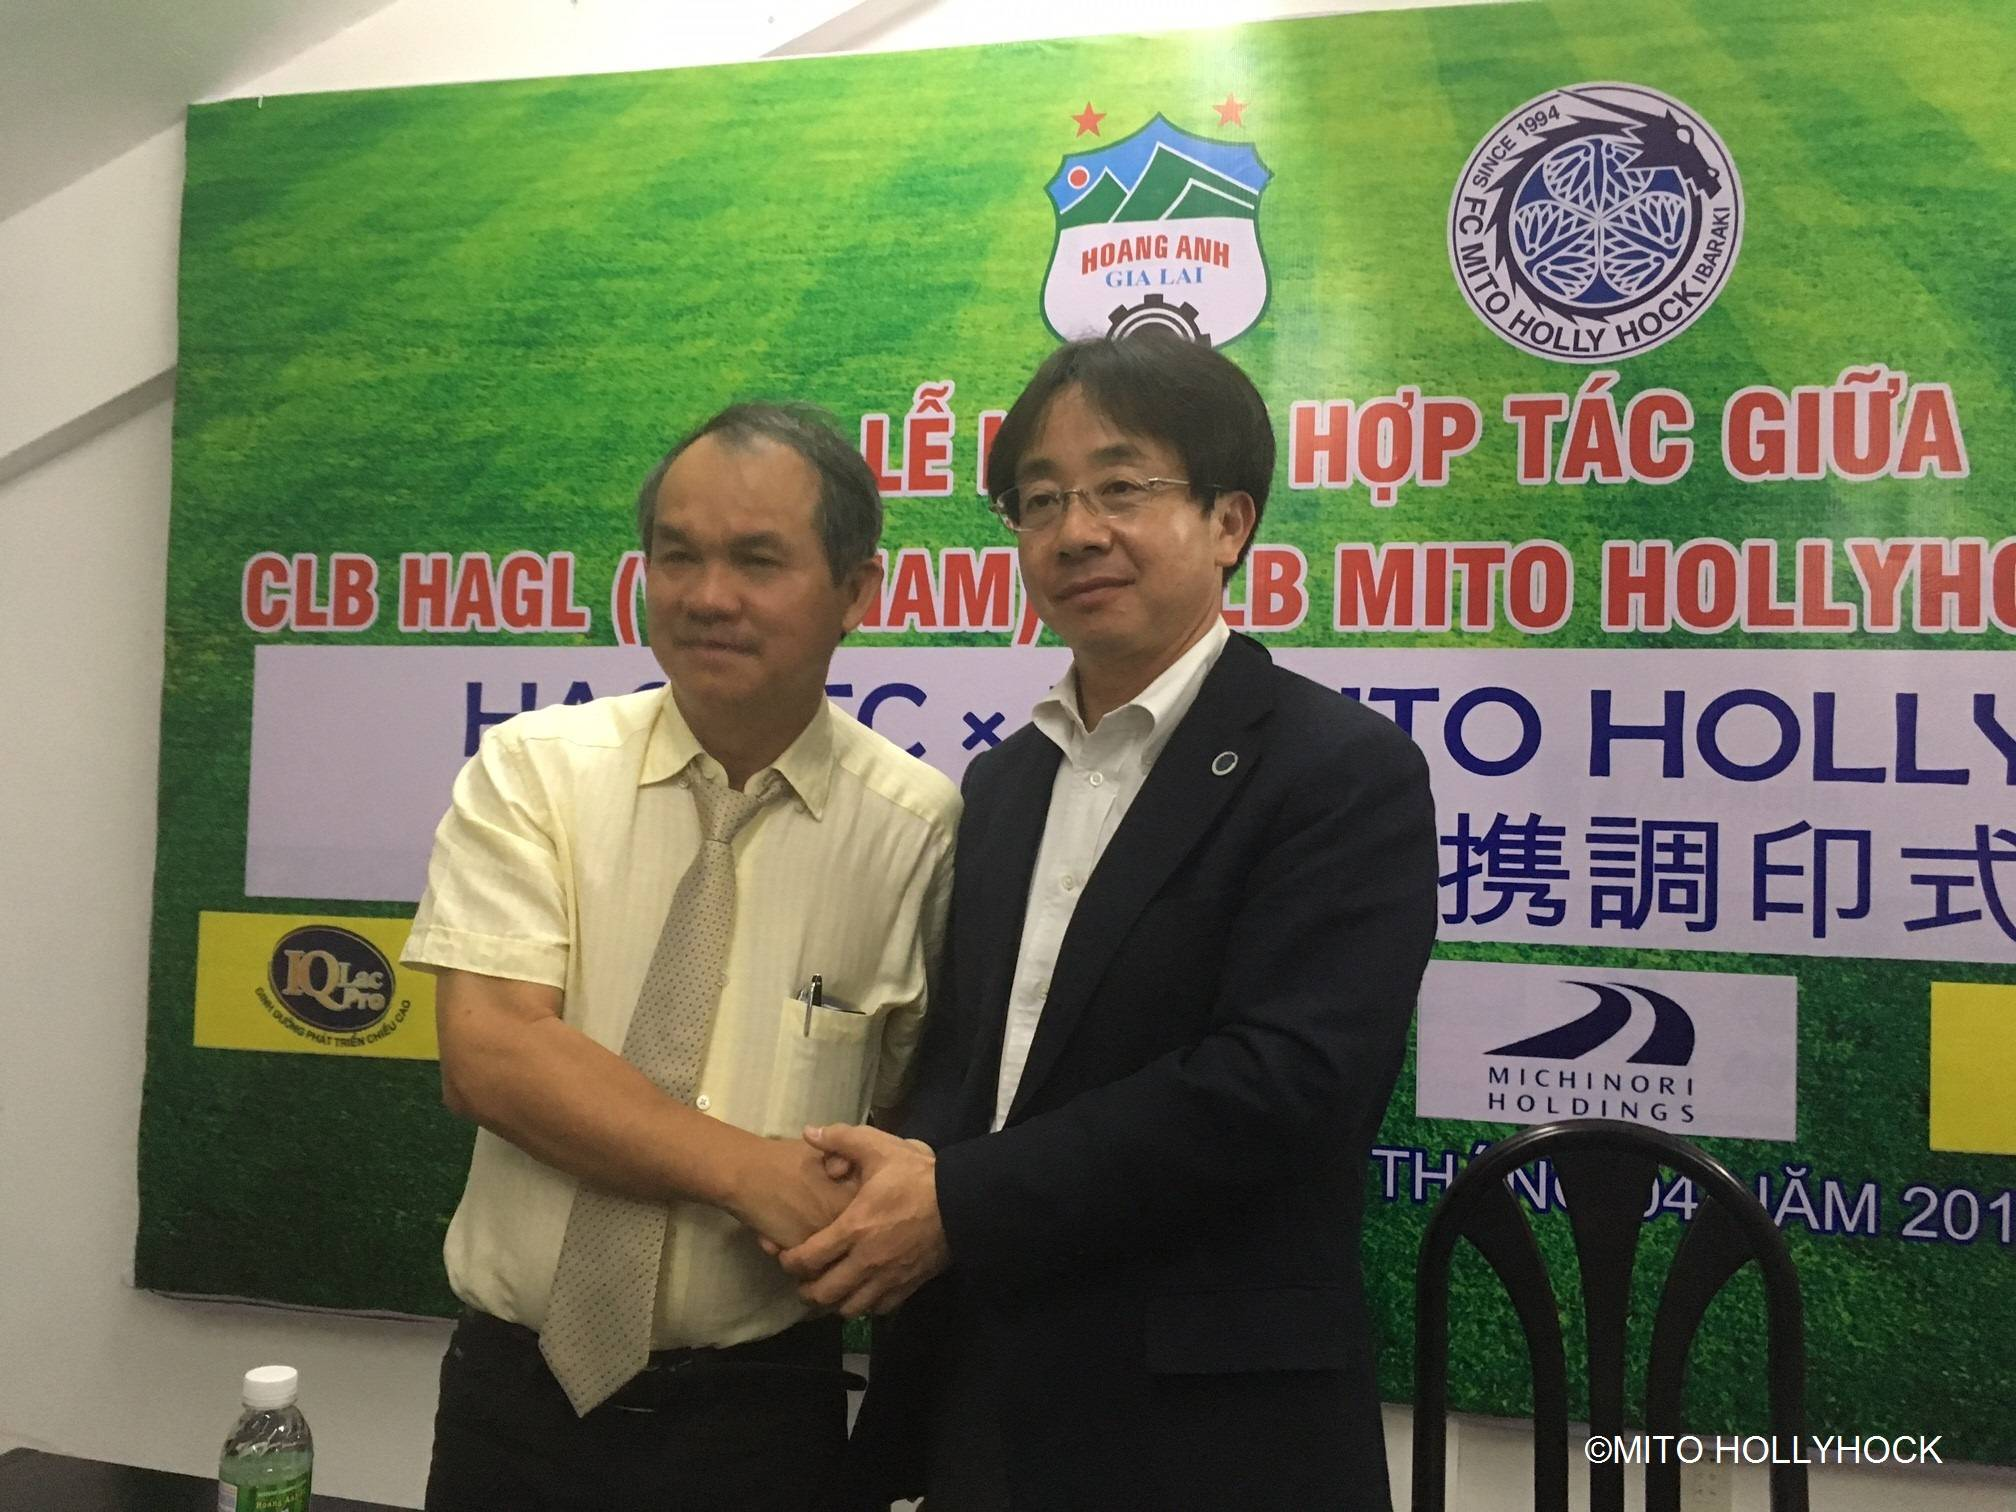 Mito Hollyhock and HAGL announce partnership; Cong Phuong return possible